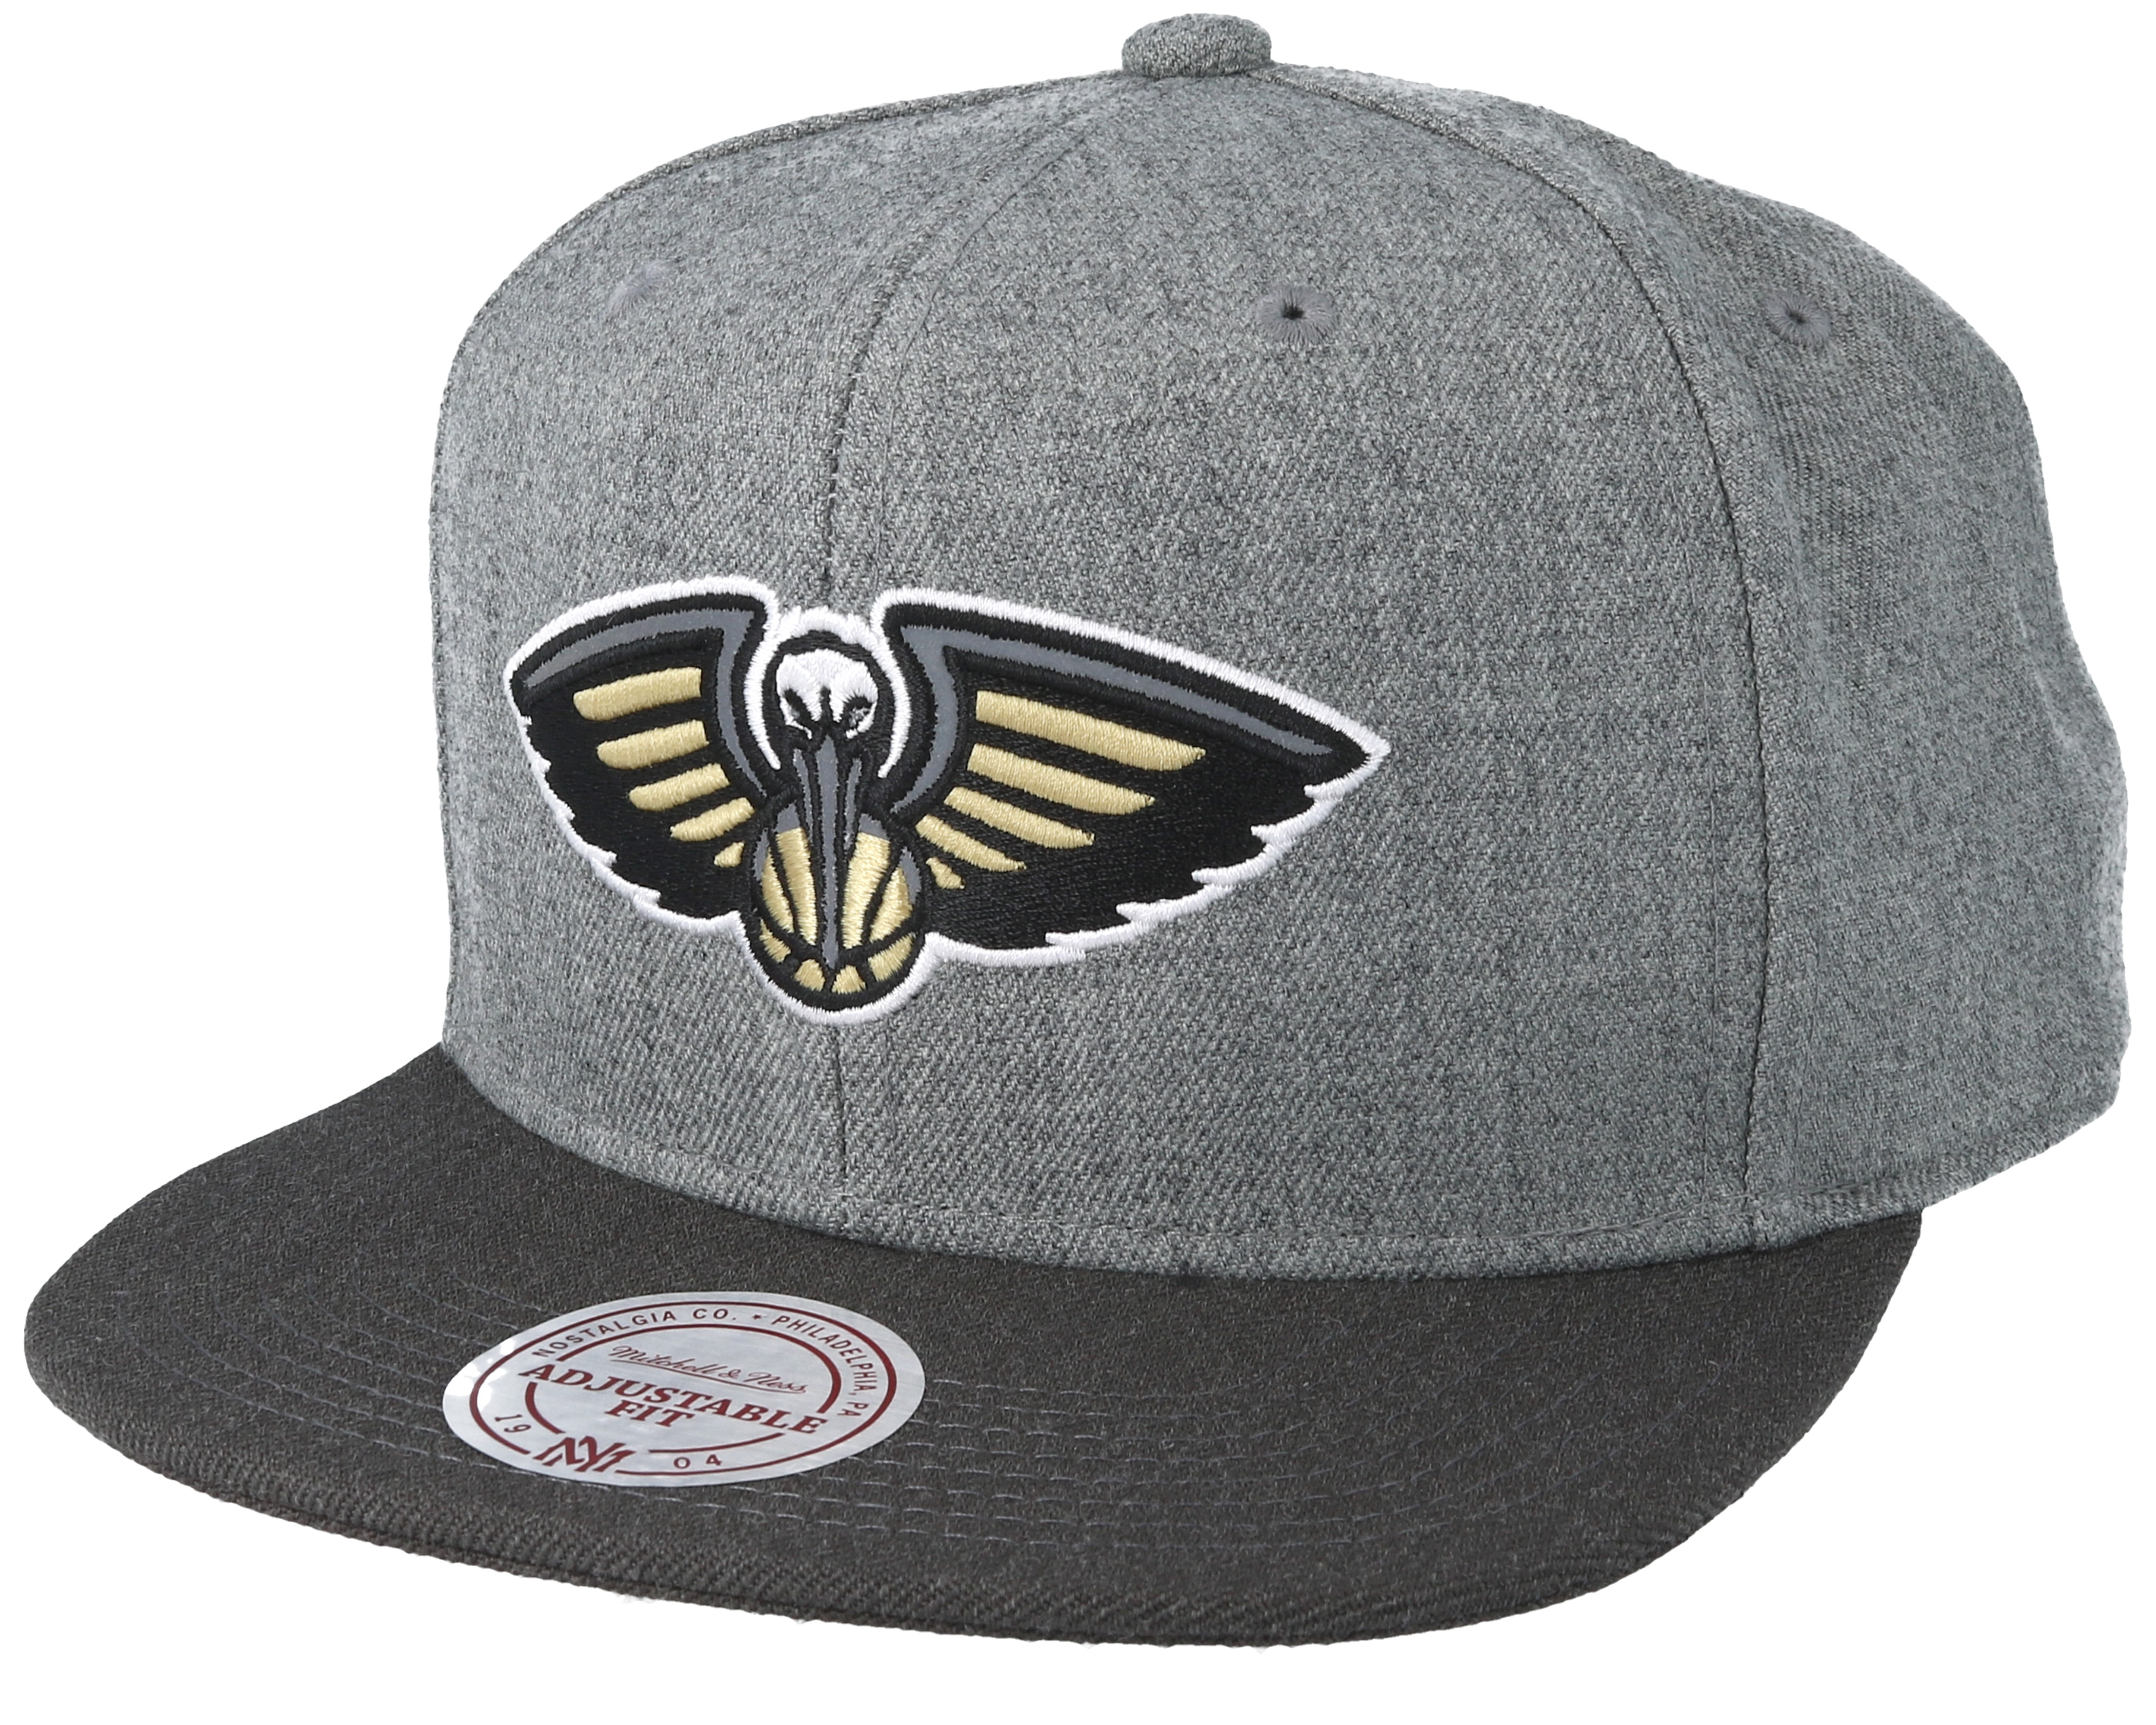 2fb77935b609f7 ... australia new orleans pelicans heather reflective grey snapback  mitchell ness fd3fe 68b60